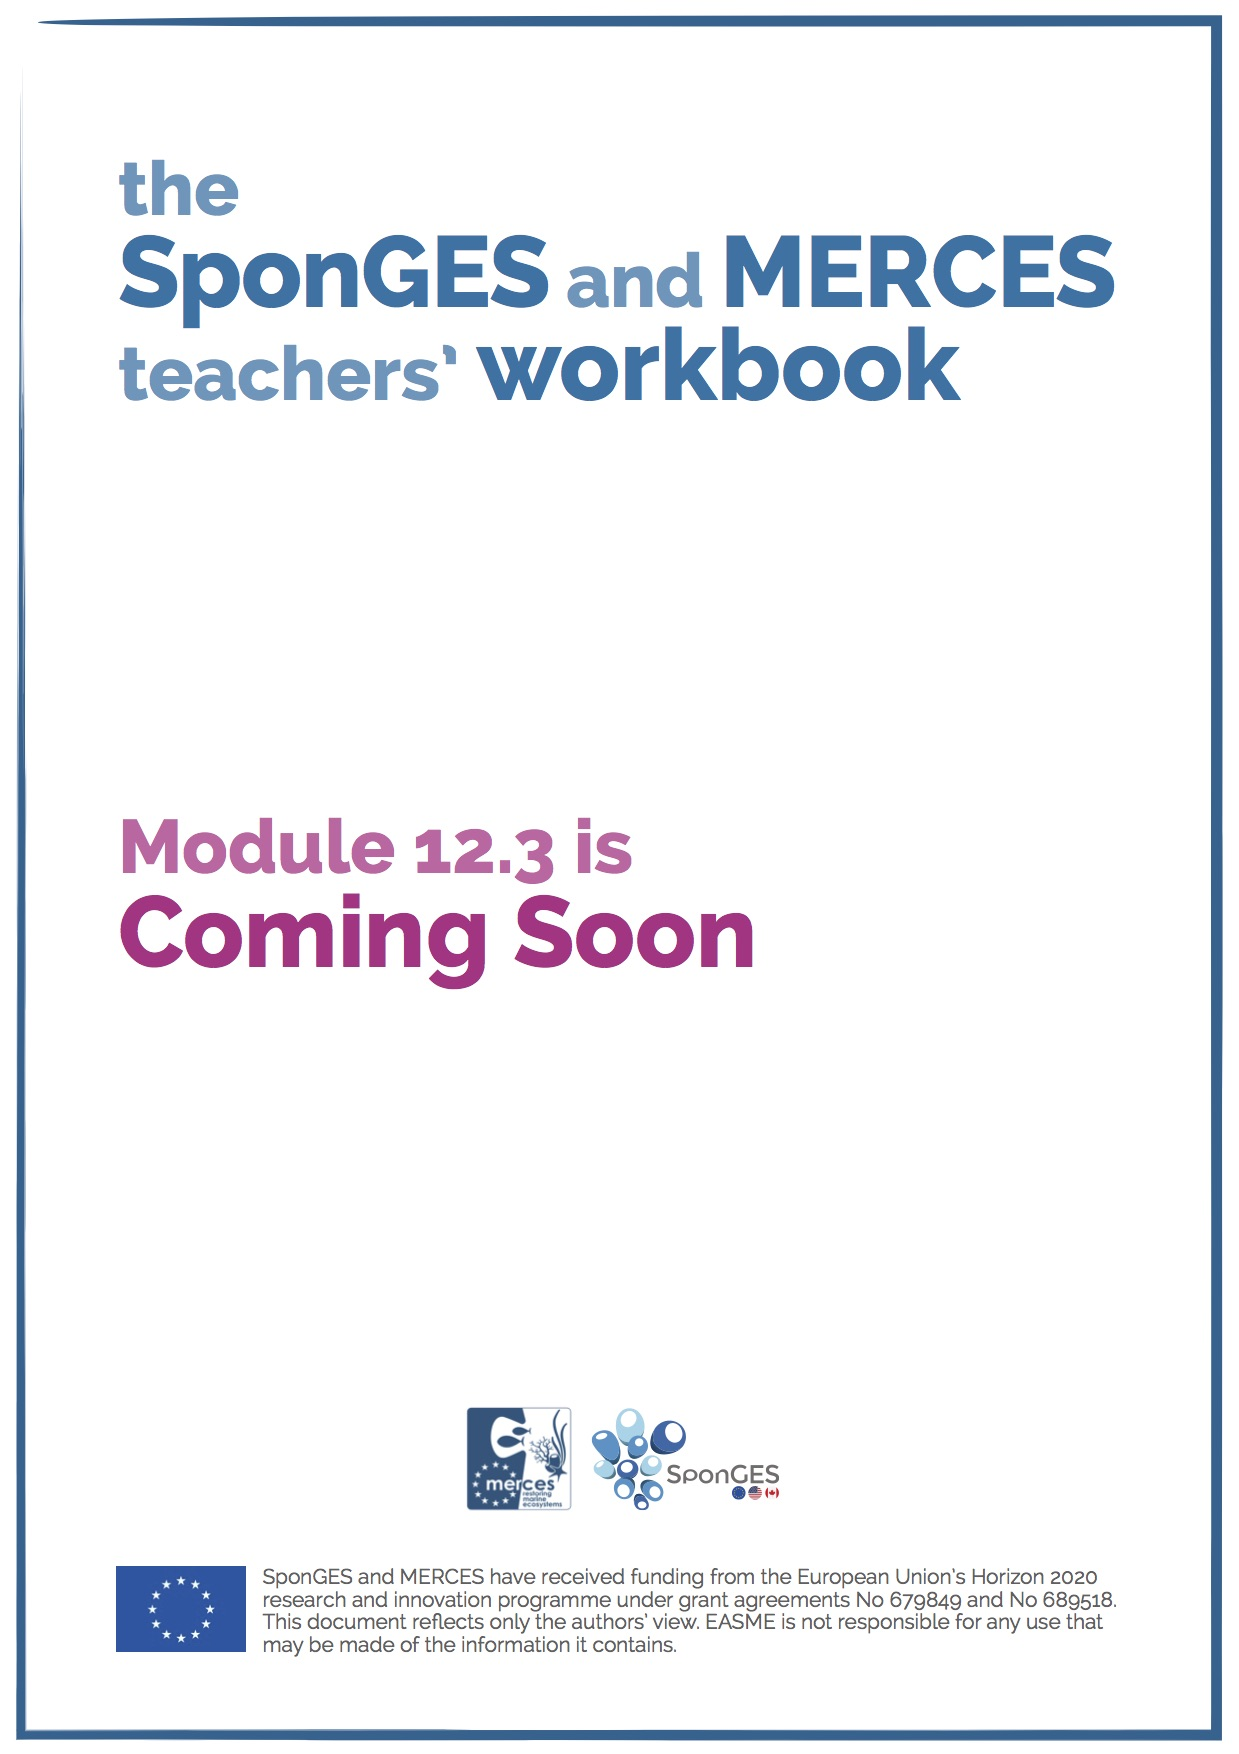 Module 12.3 of the SponGES and MERCES teachers' workbook